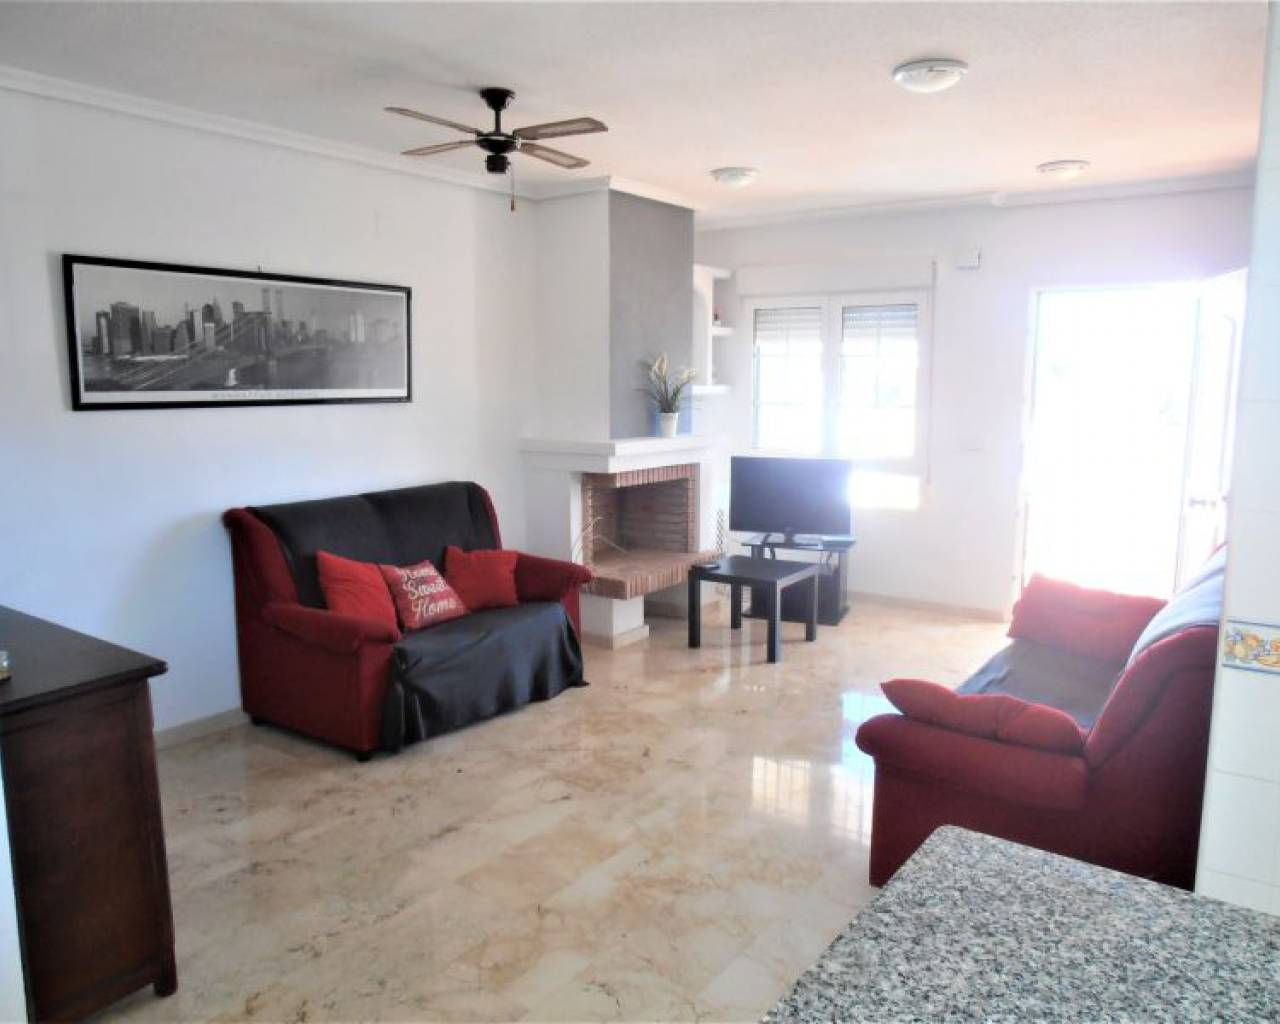 Sale - Apartment - Orihuela-Costa - Villamartin